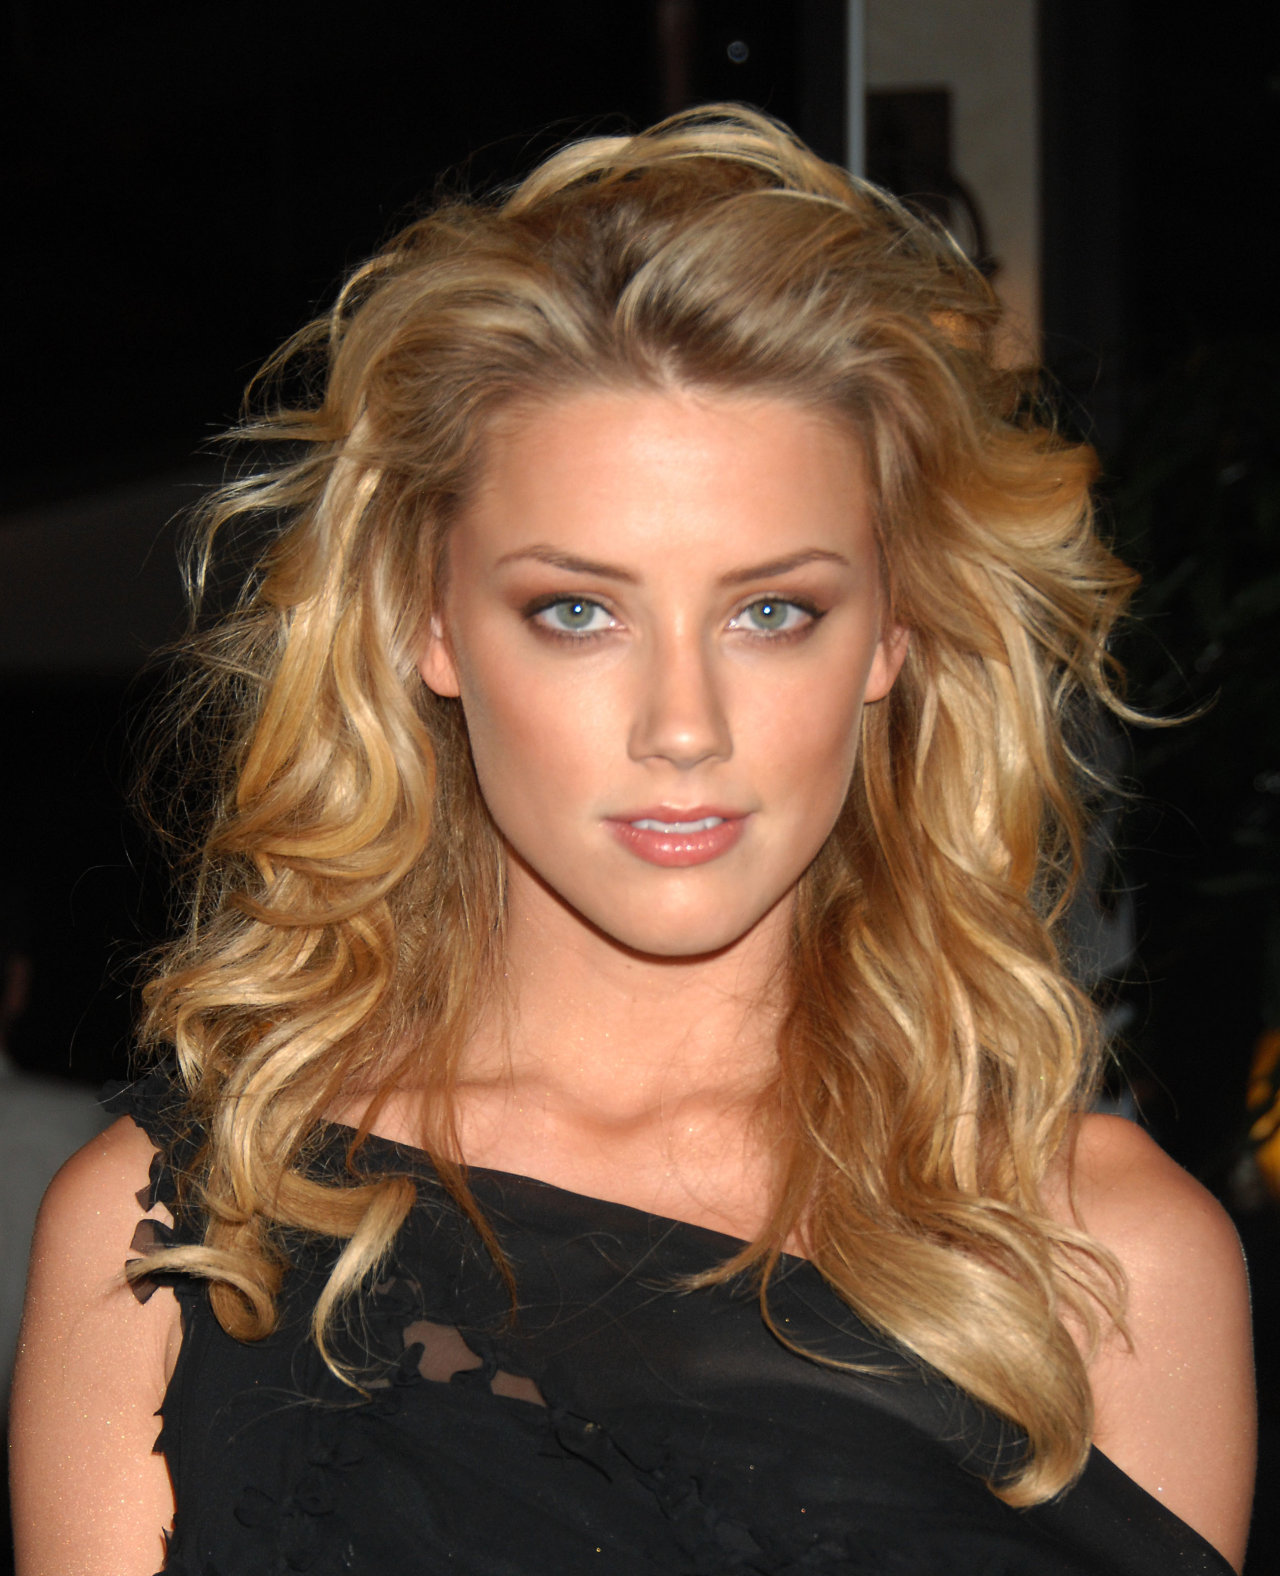 Celebrity Amber Heard Hairstyle Pictures | Hairs Any Miranda Kerr Jewish